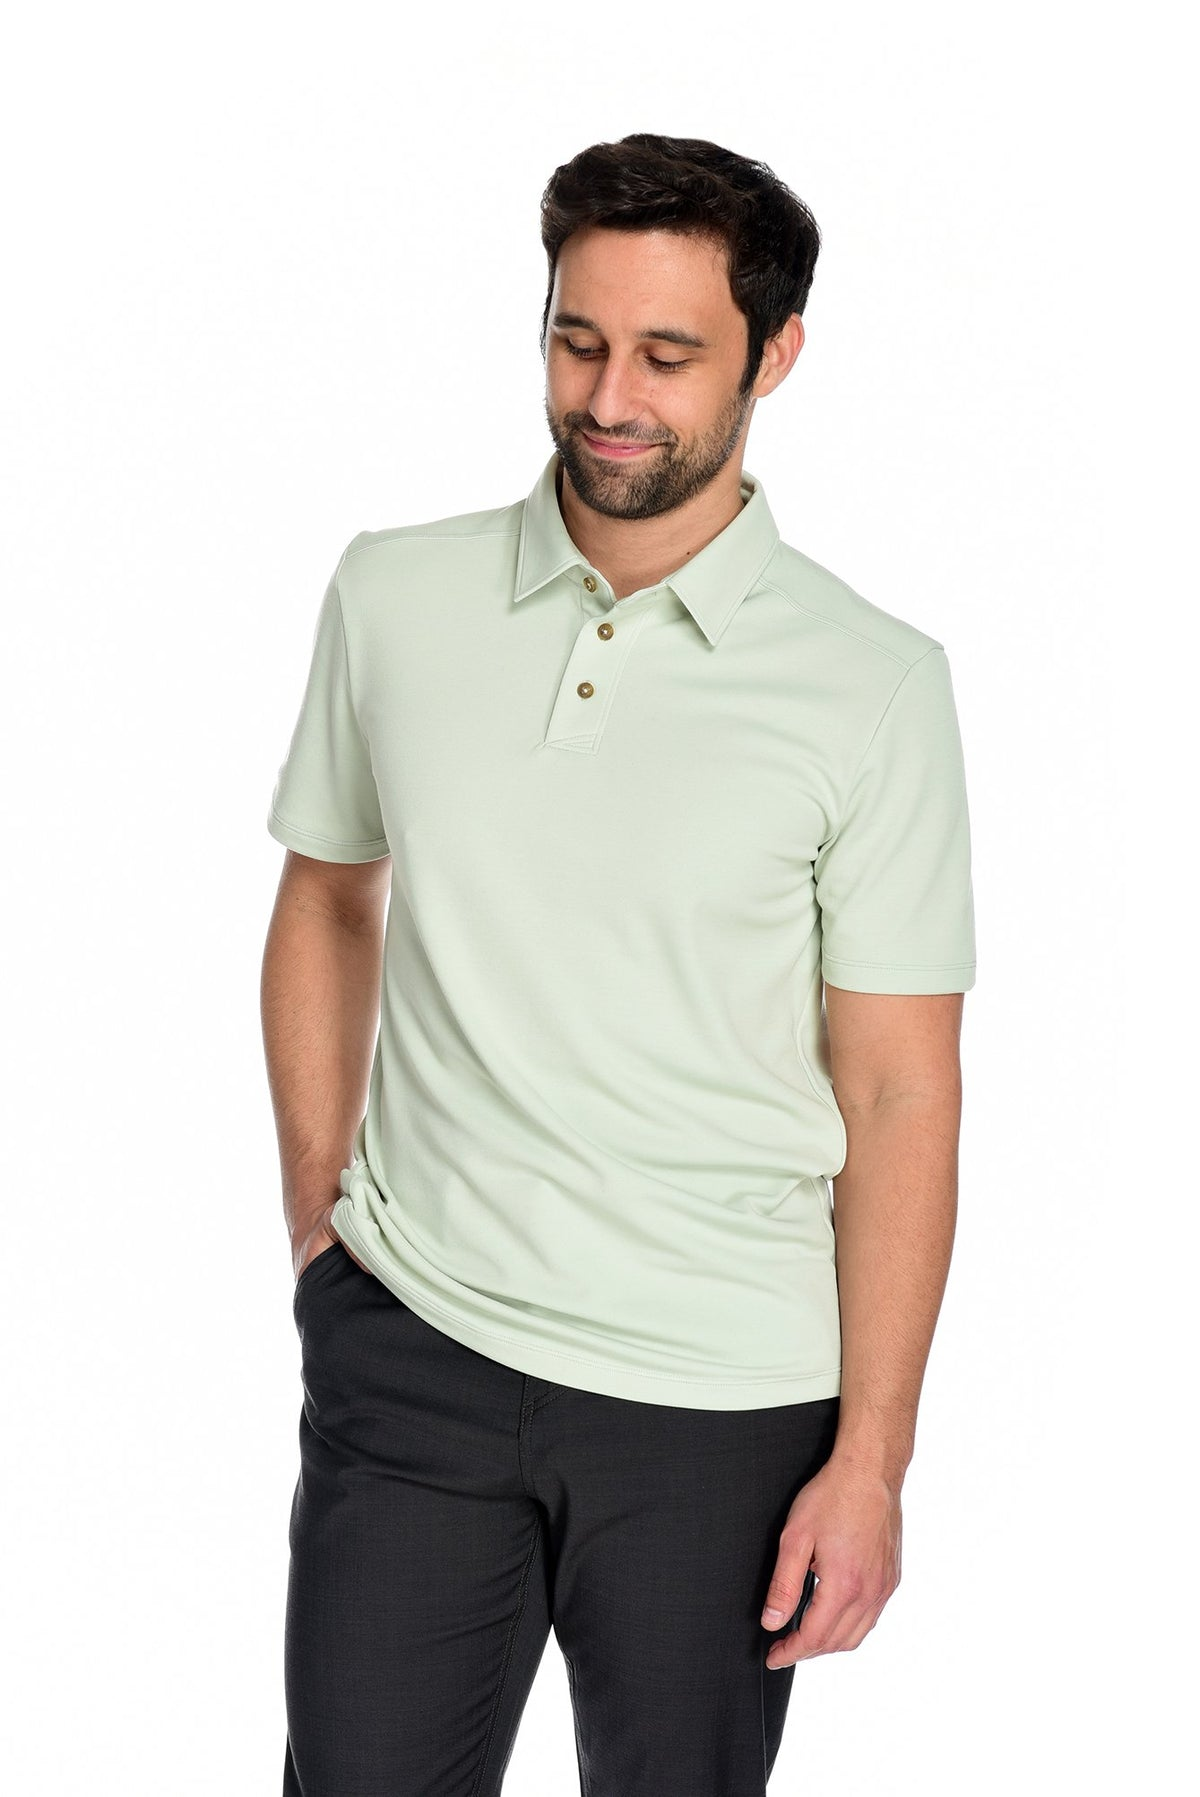 Fisher + Baker Manchester Polo